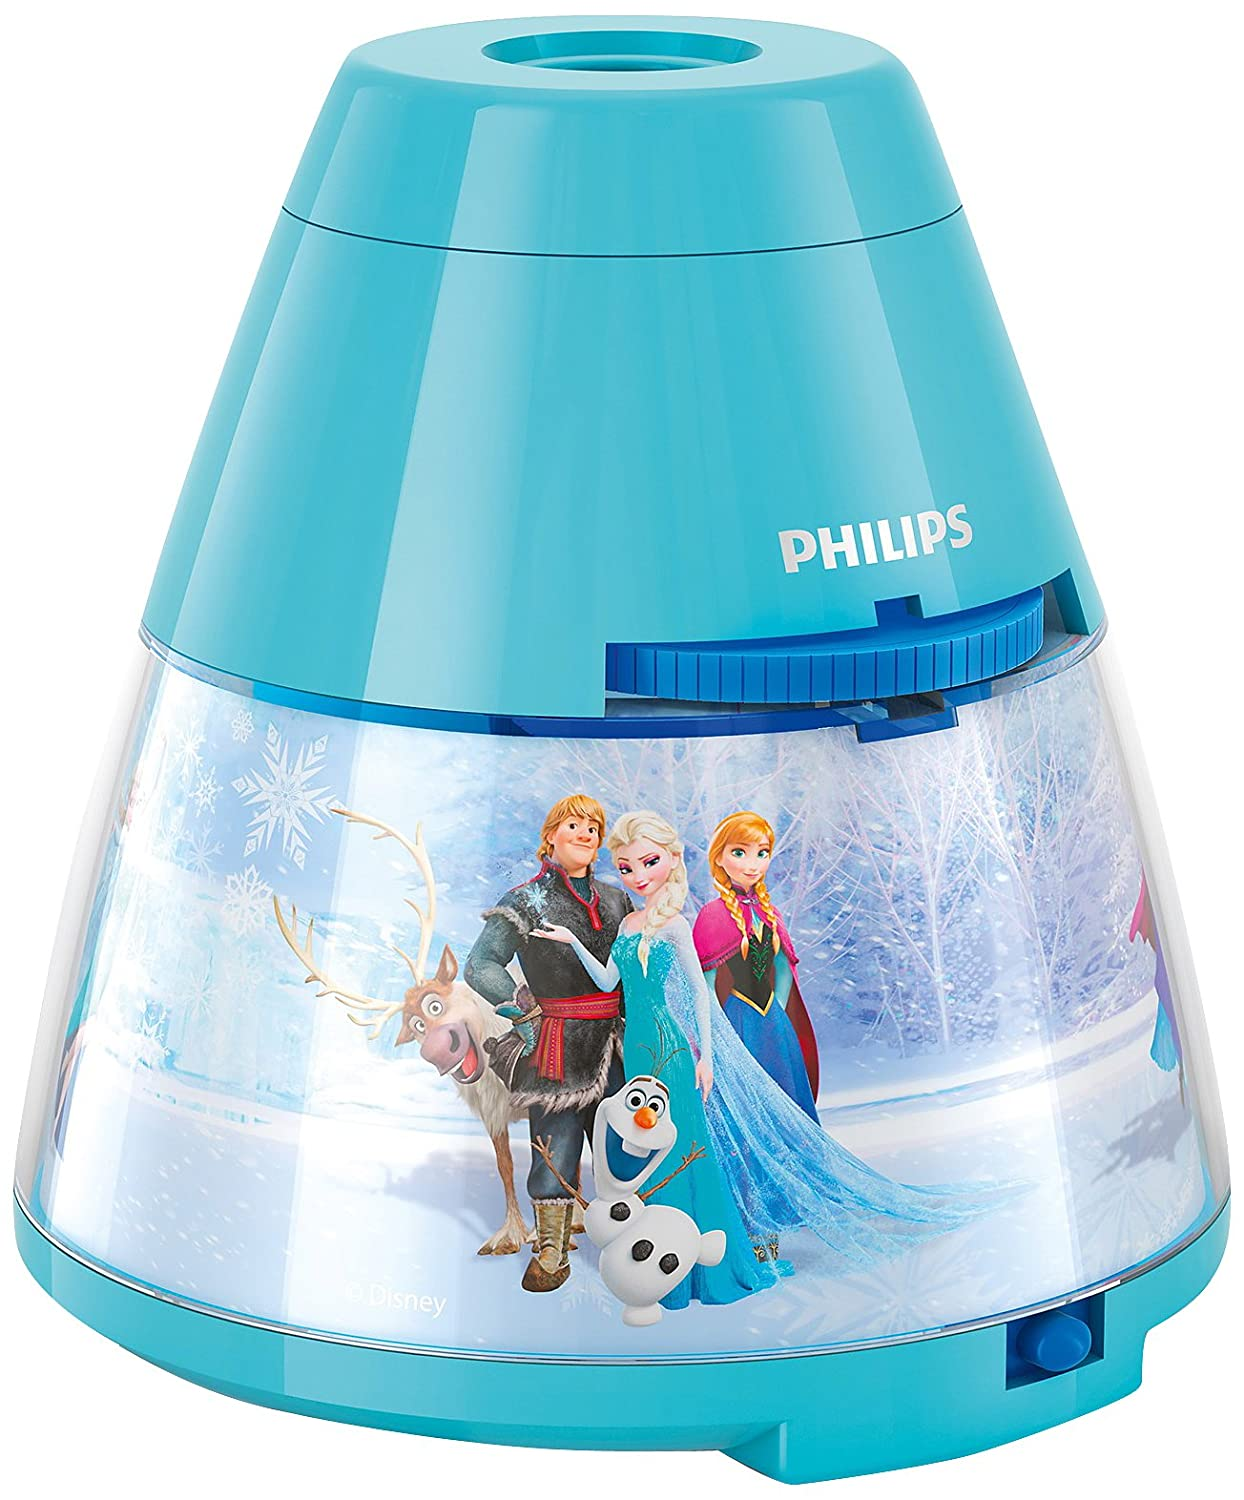 disney frozen bedside table lamp children night light projector philips bedroom ebay. Black Bedroom Furniture Sets. Home Design Ideas